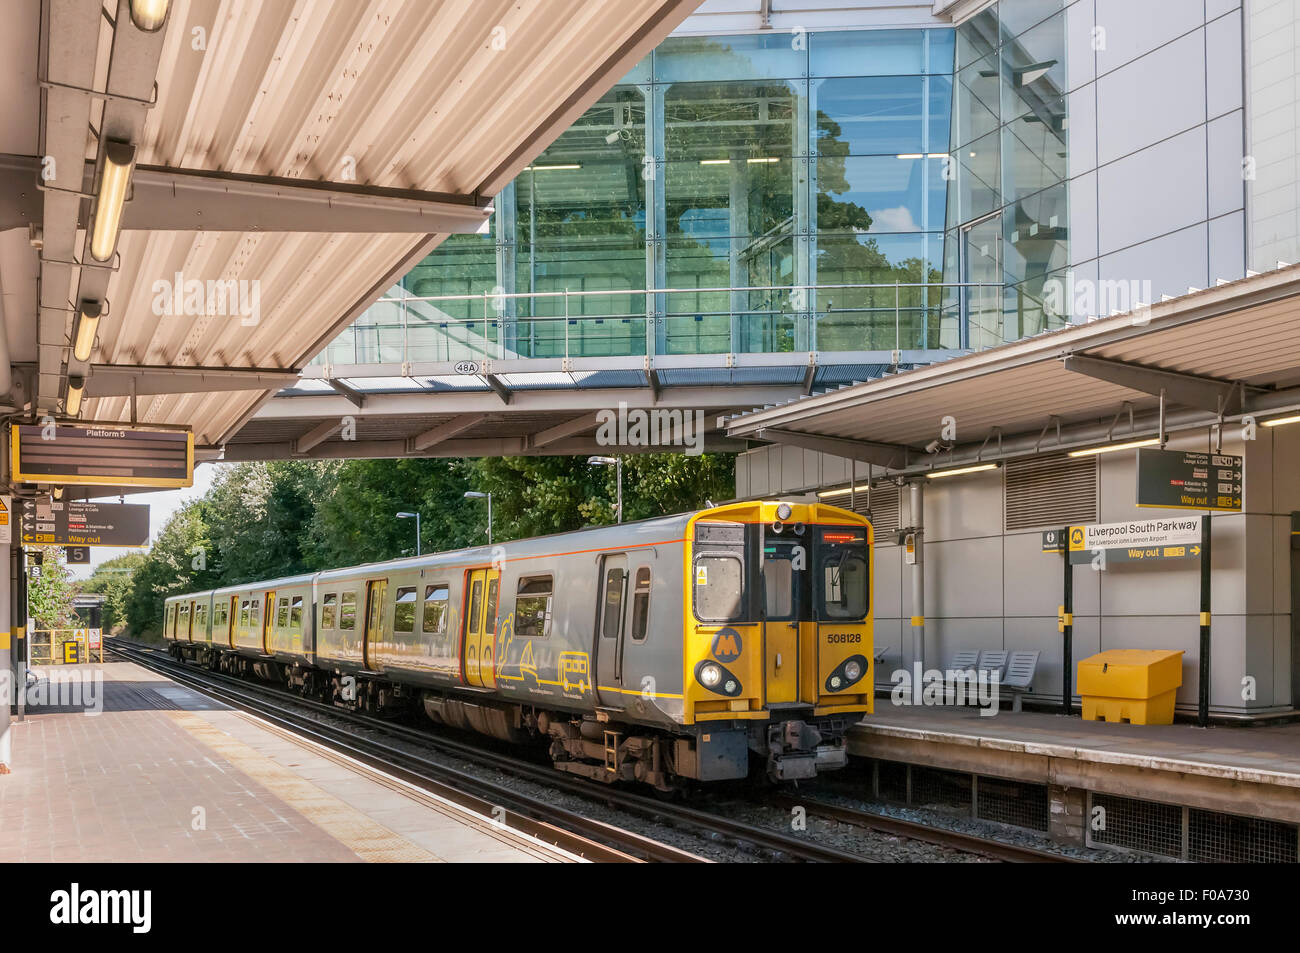 Merseyrail electric train South Parkway station. Liverpool - Stock Image